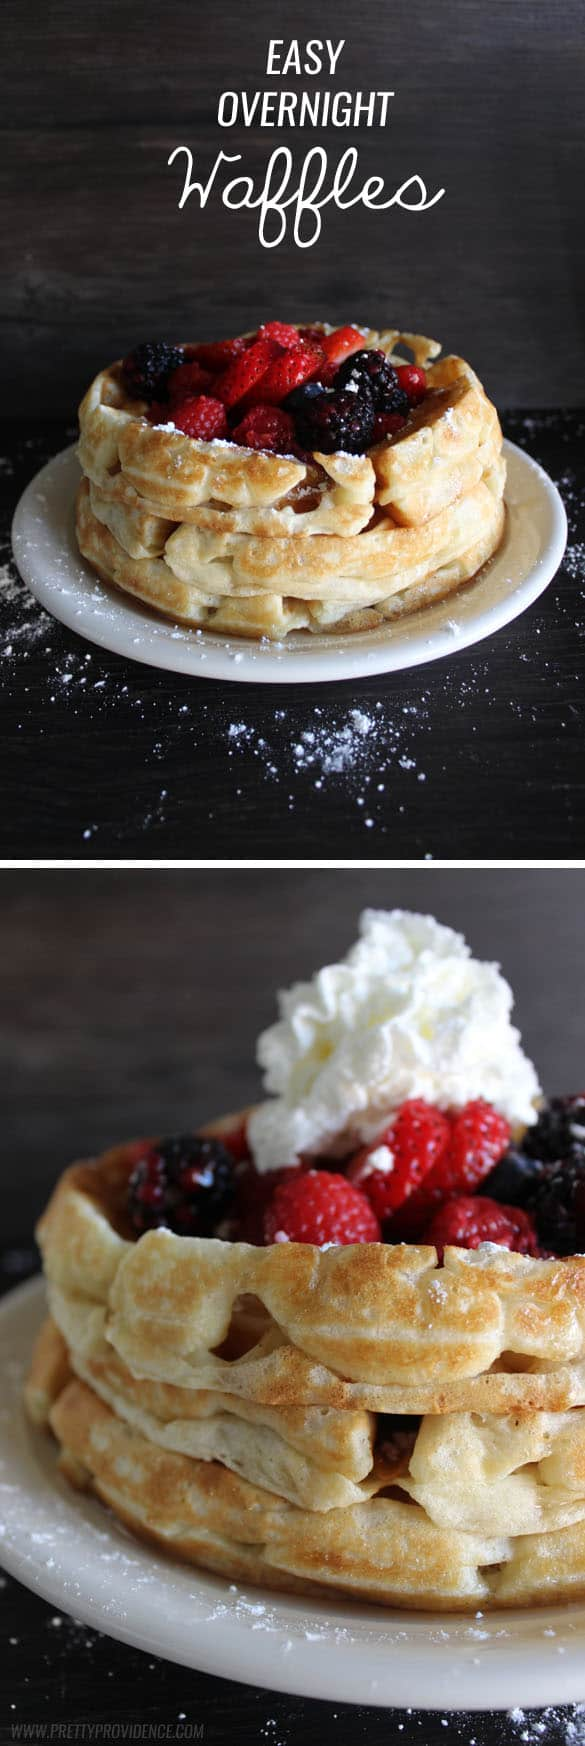 No lie, these are hands down the best waffles I have EVER eaten. We make these all the time and they never get old! So easy, too.